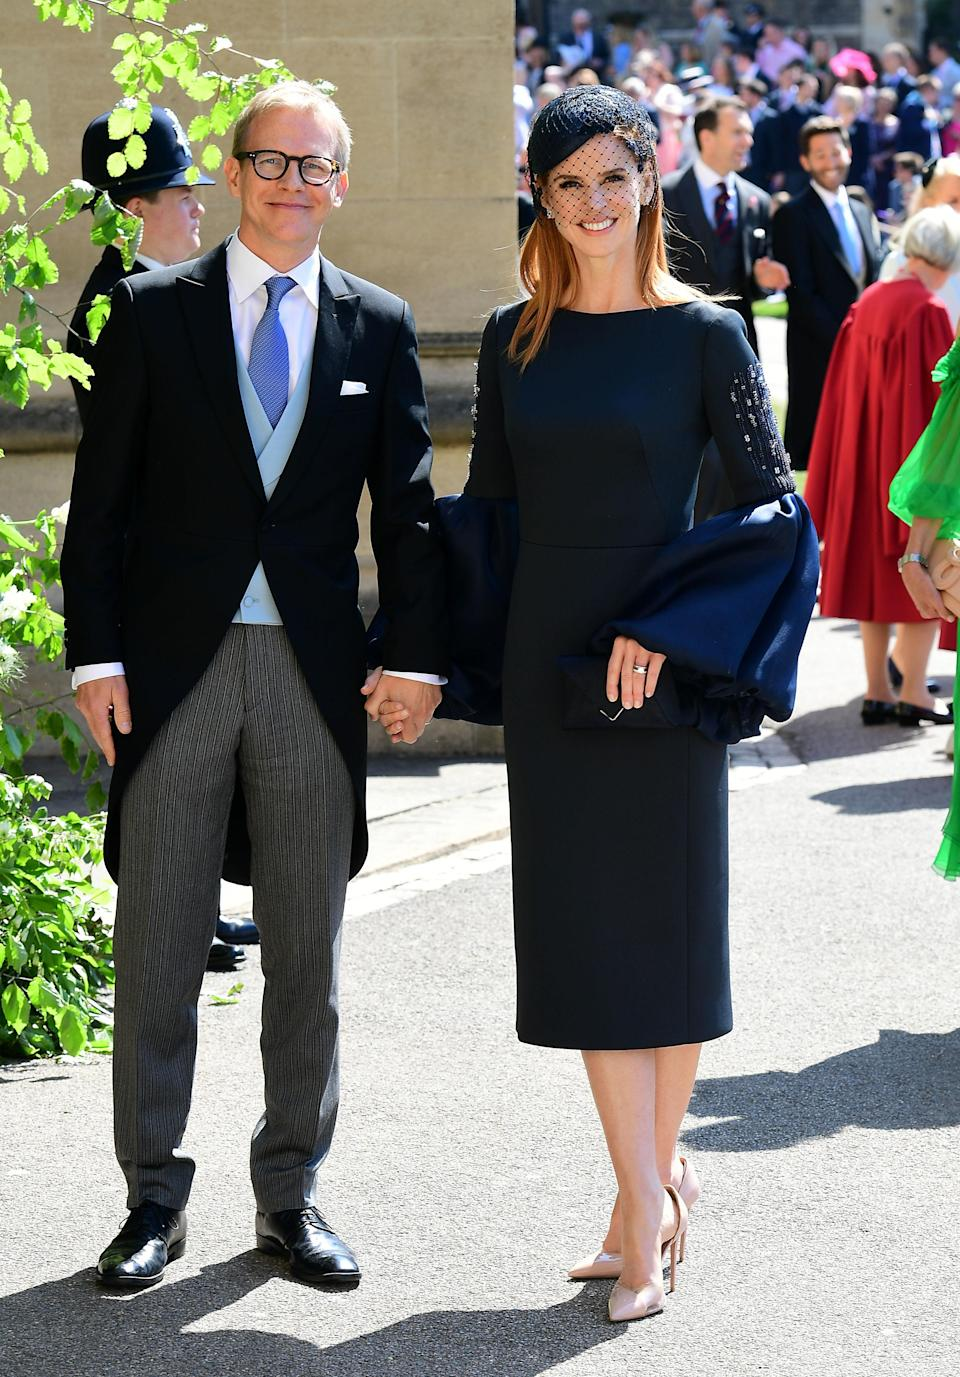 <p><span>Sarah, wearing a Lavin dress and a Philip Treacy hat, is also part of the 'Suits' family and is said to have grown close to Meghan while filming the show. </span><span>[Photo: Getty]</span> </p>